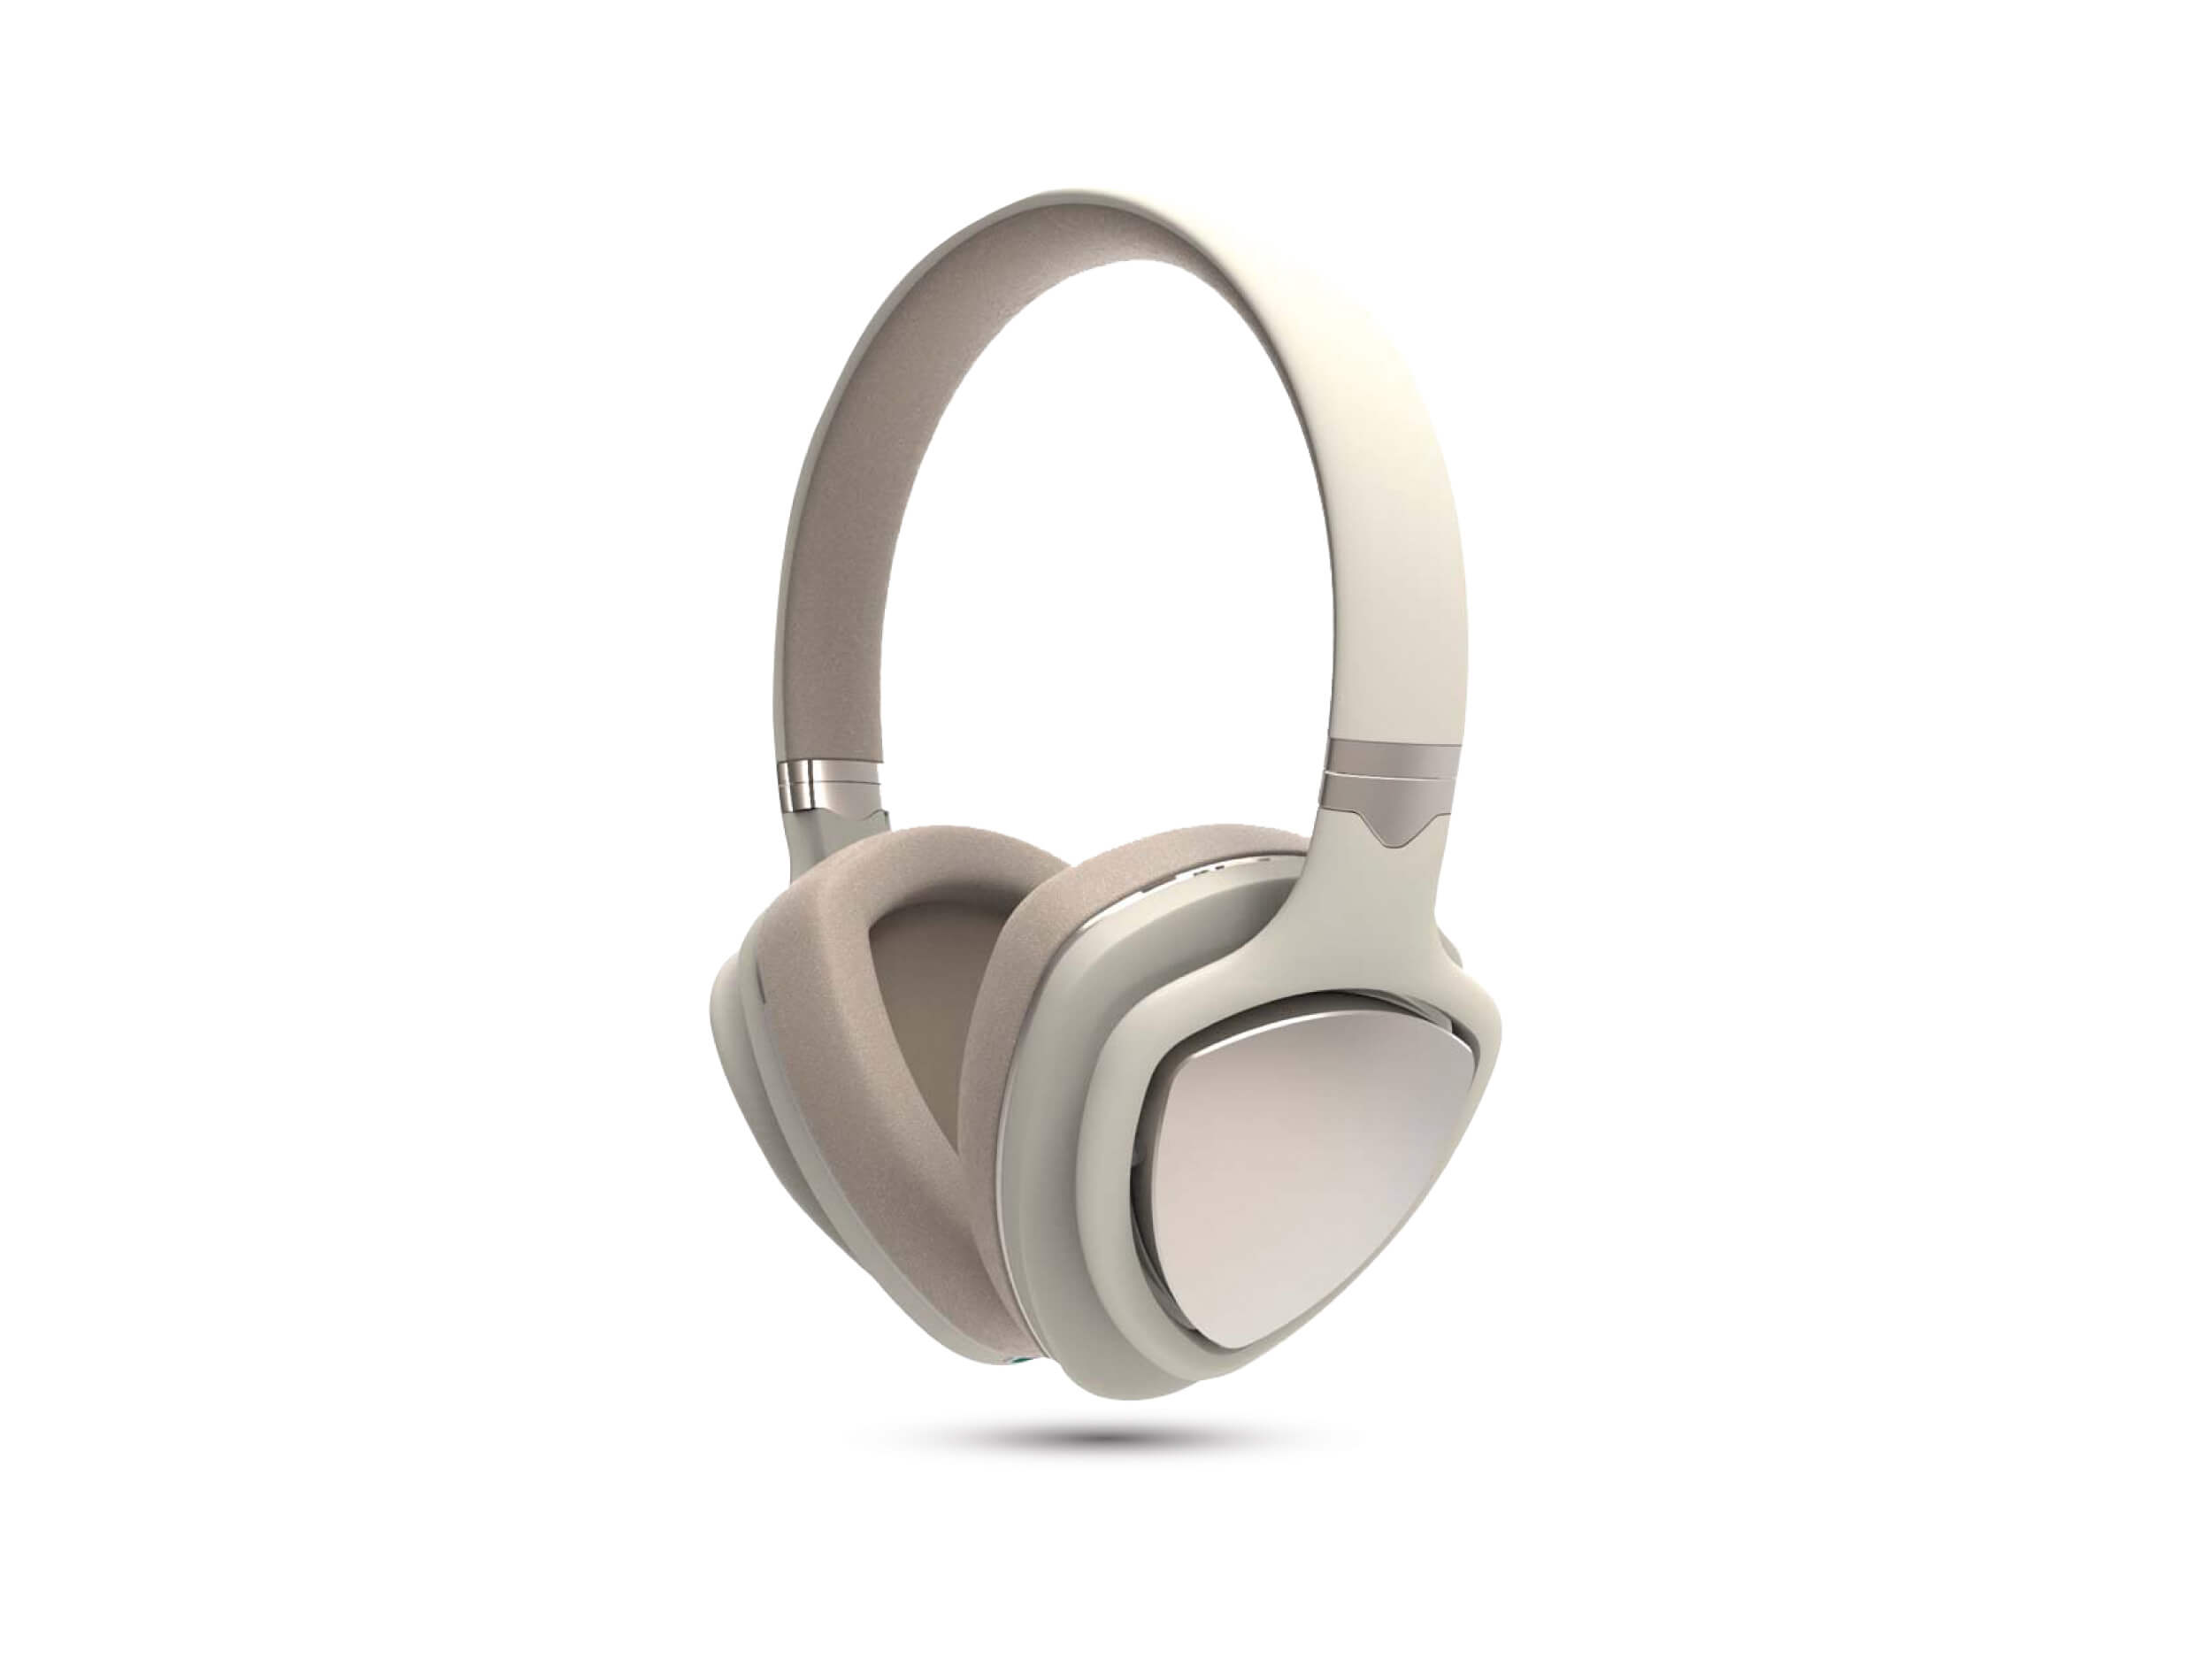 Bose Noise Cancelling Bose Noise Cancelling Headphone Cyber Monday Deals 40 Off